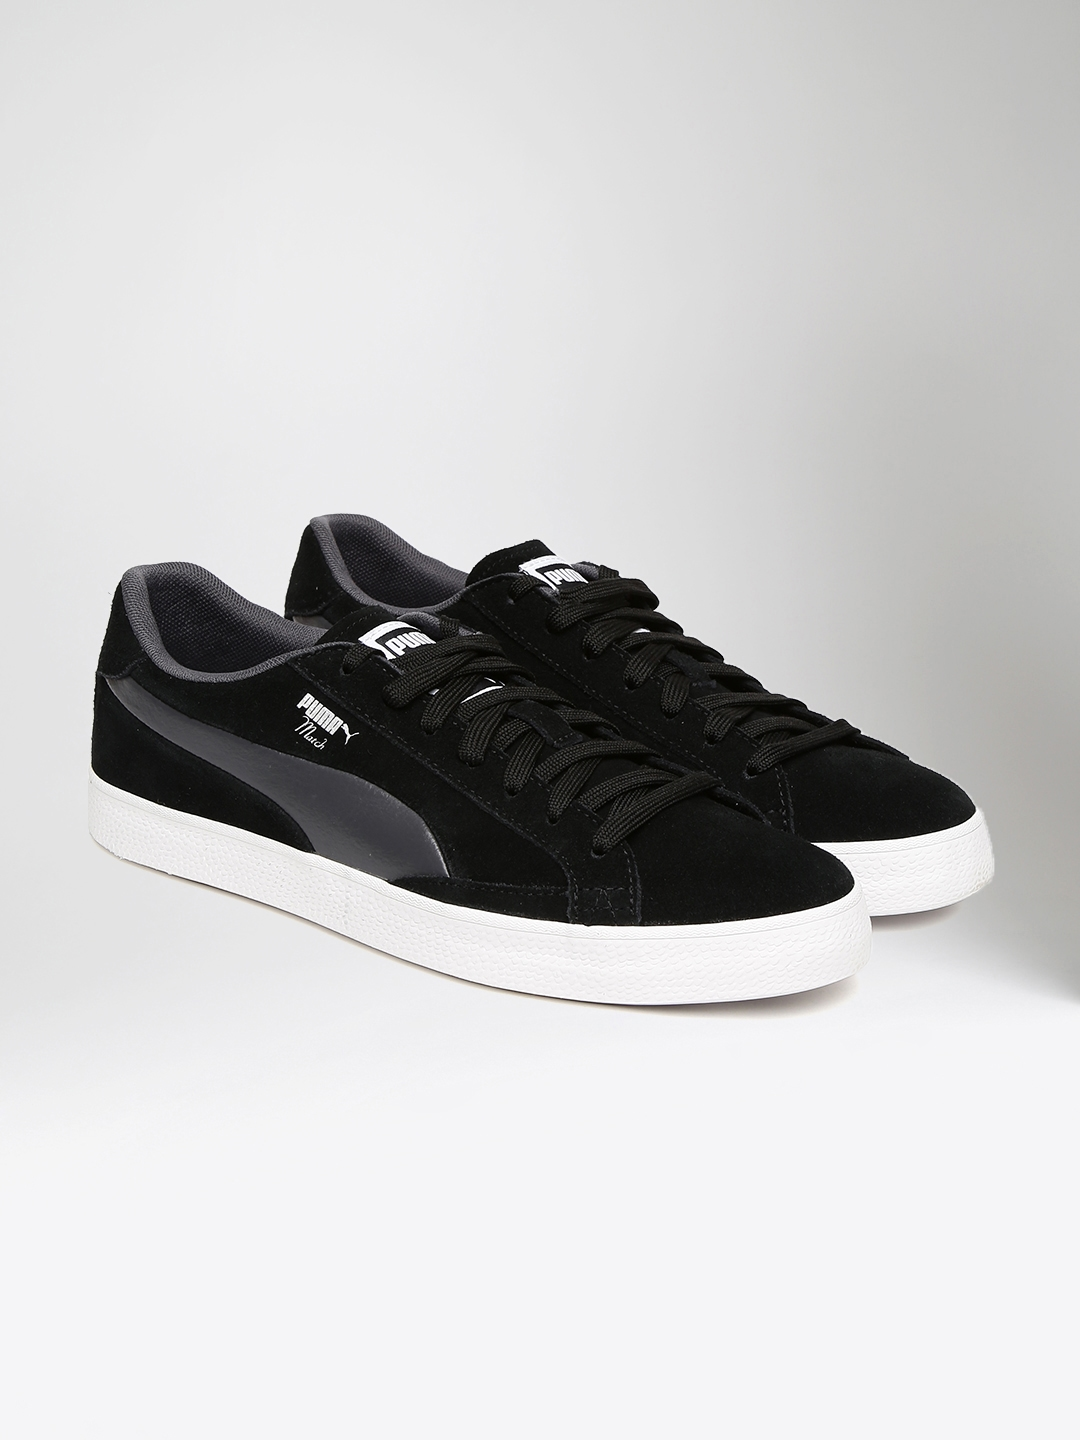 b6d406b144f654 Buy Puma Men Black Match Vulc 2 Suede Sneakers - Casual Shoes for ...